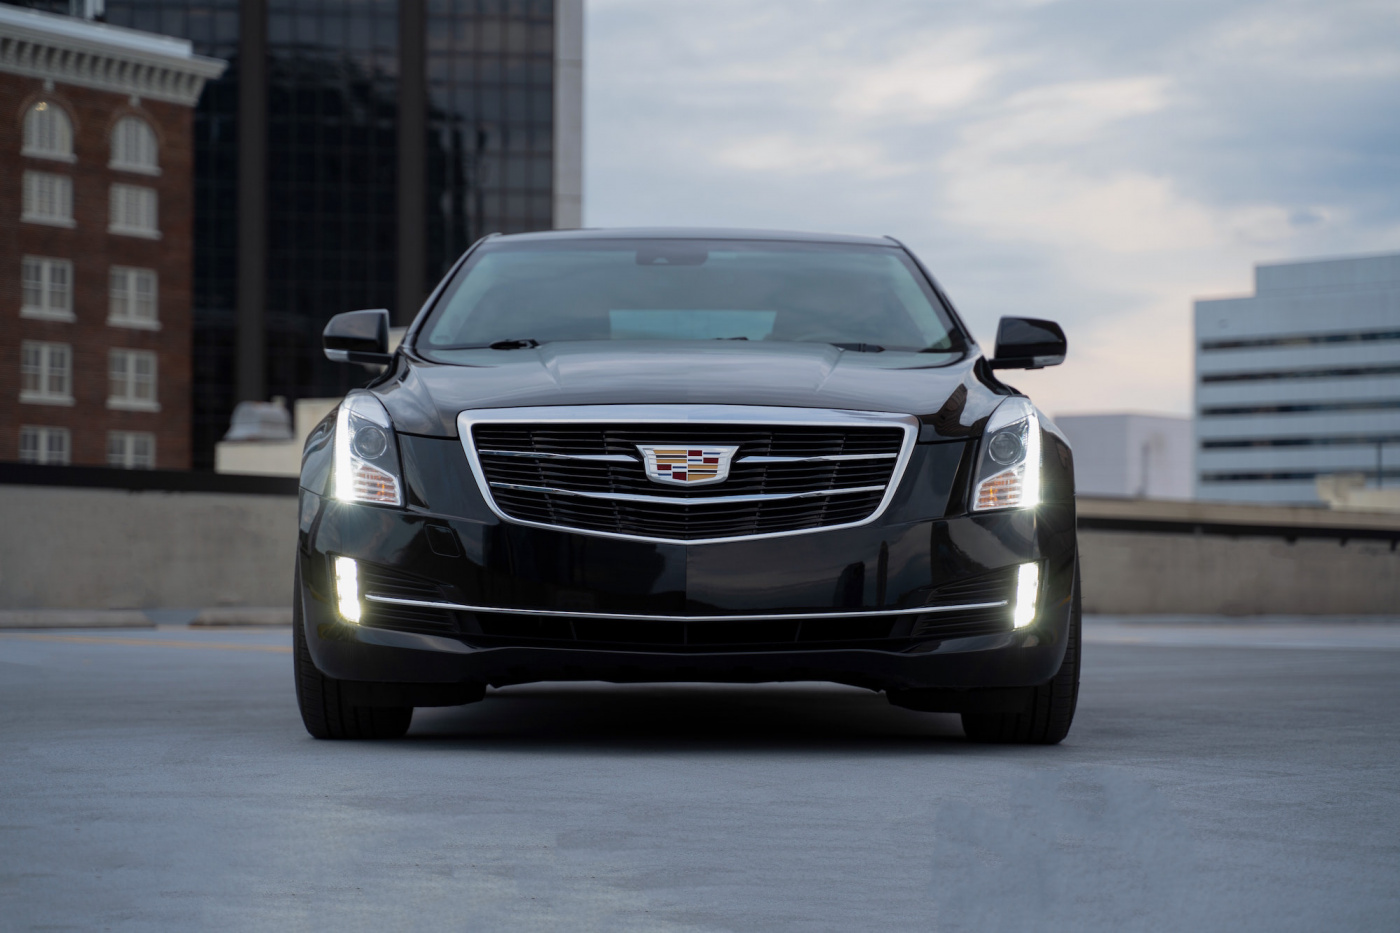 Cadillac Live Transfers the One-to-One Showroom Experience to Digital